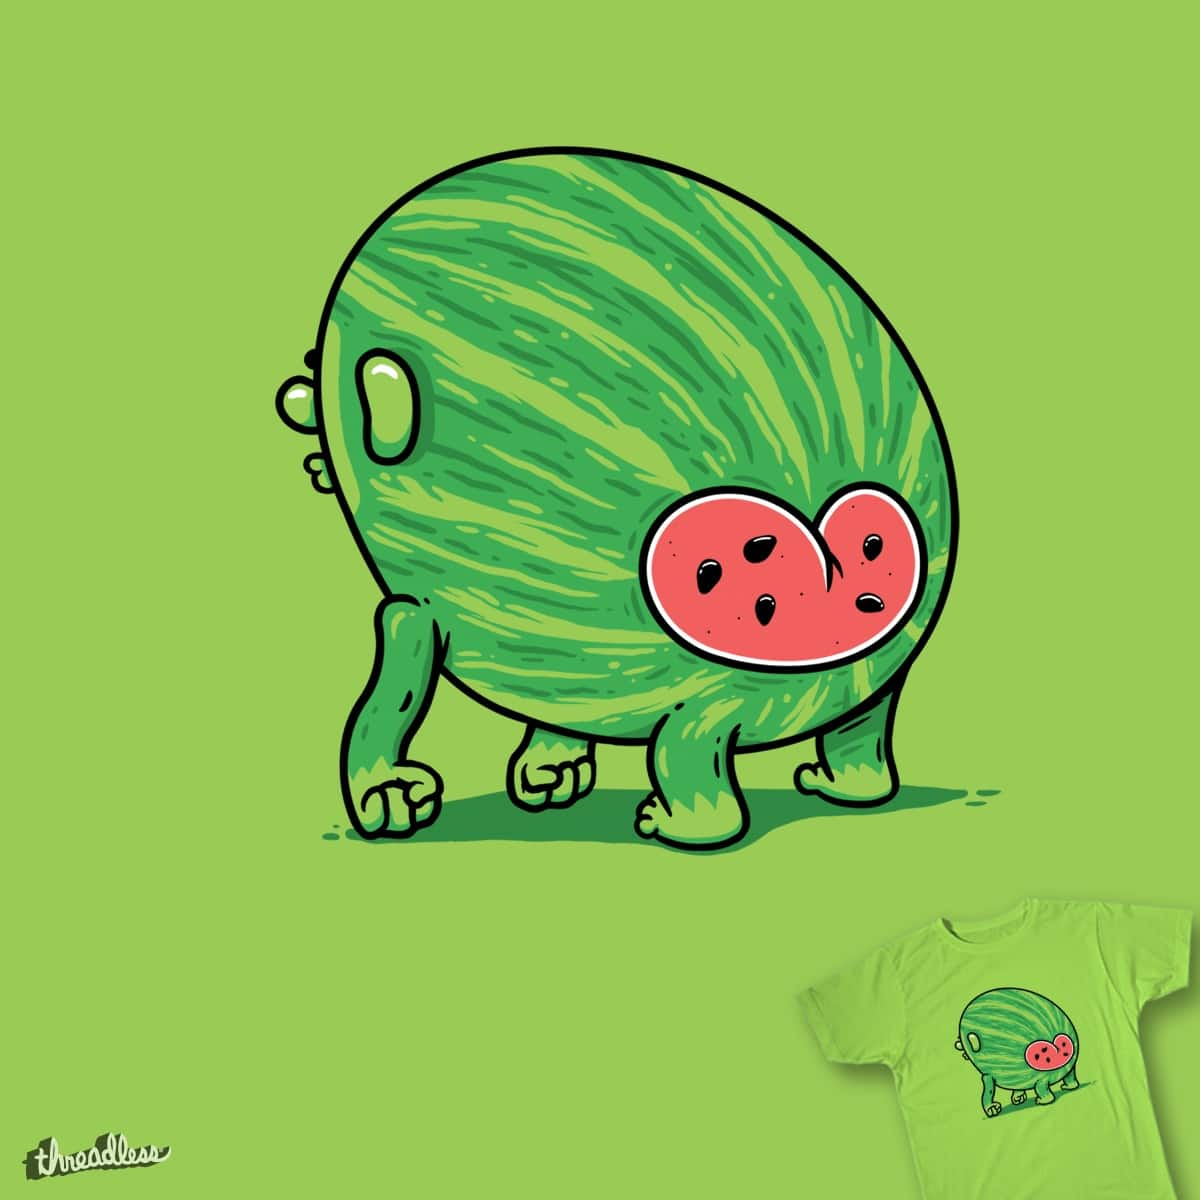 The Evolution of Watermelon by zayedforsale on Threadless